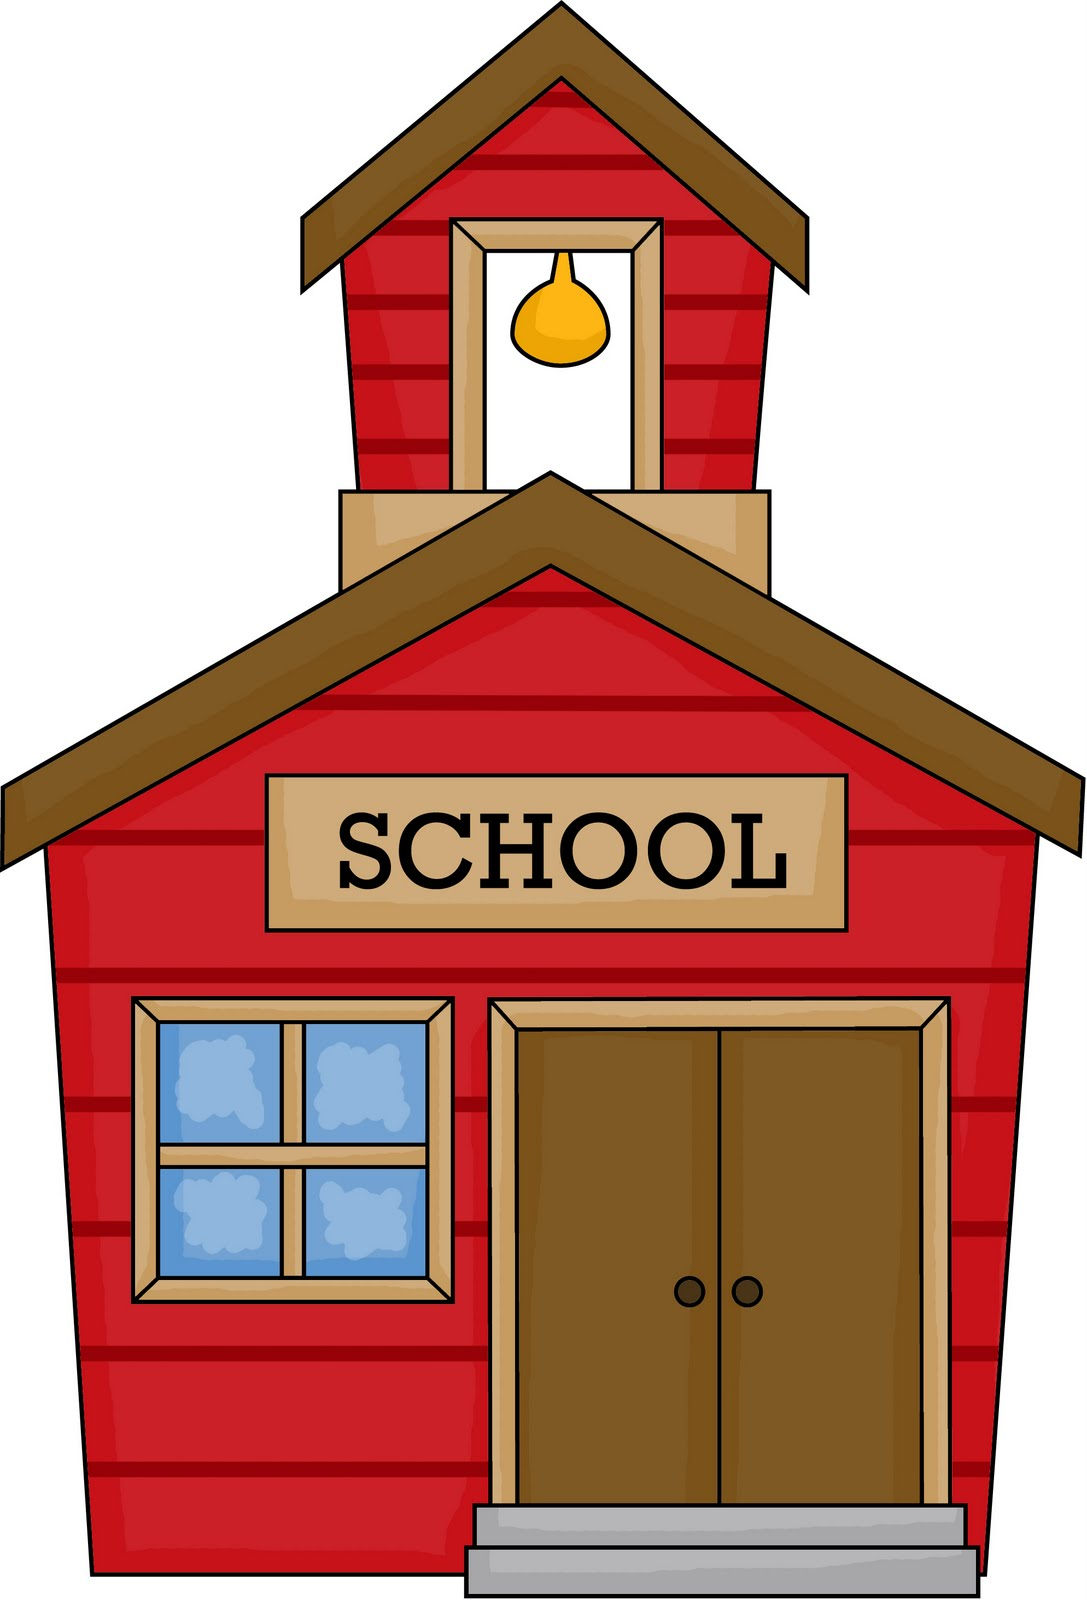 Free Image Schoolhouse - ClipArt Best